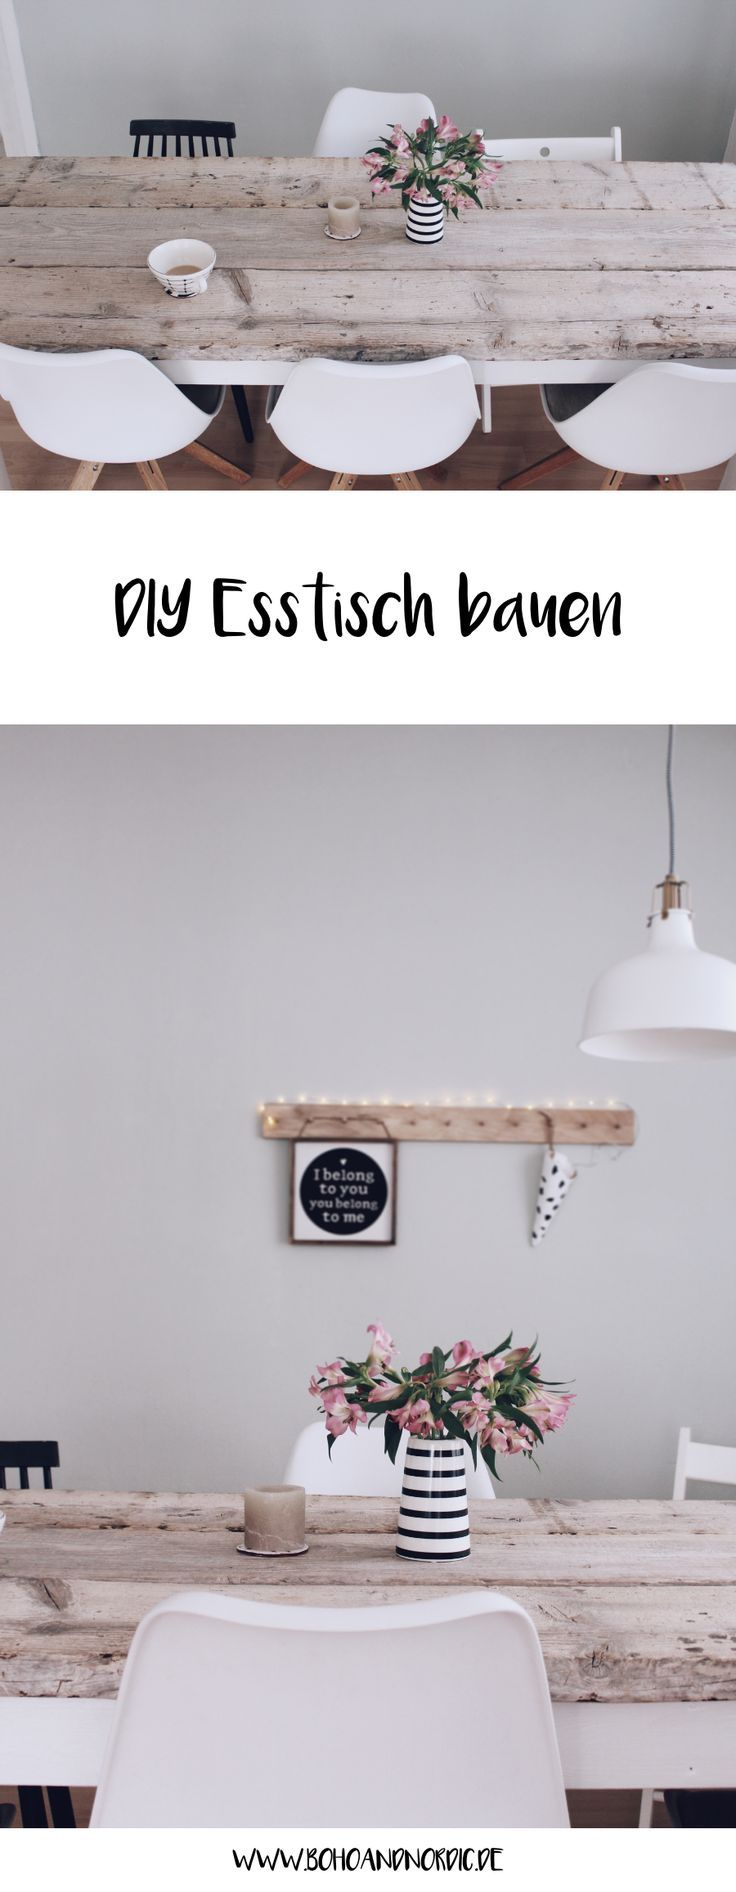 2 ton küchenschrank ideen  best diyideas images on pinterest  decks garden deco and